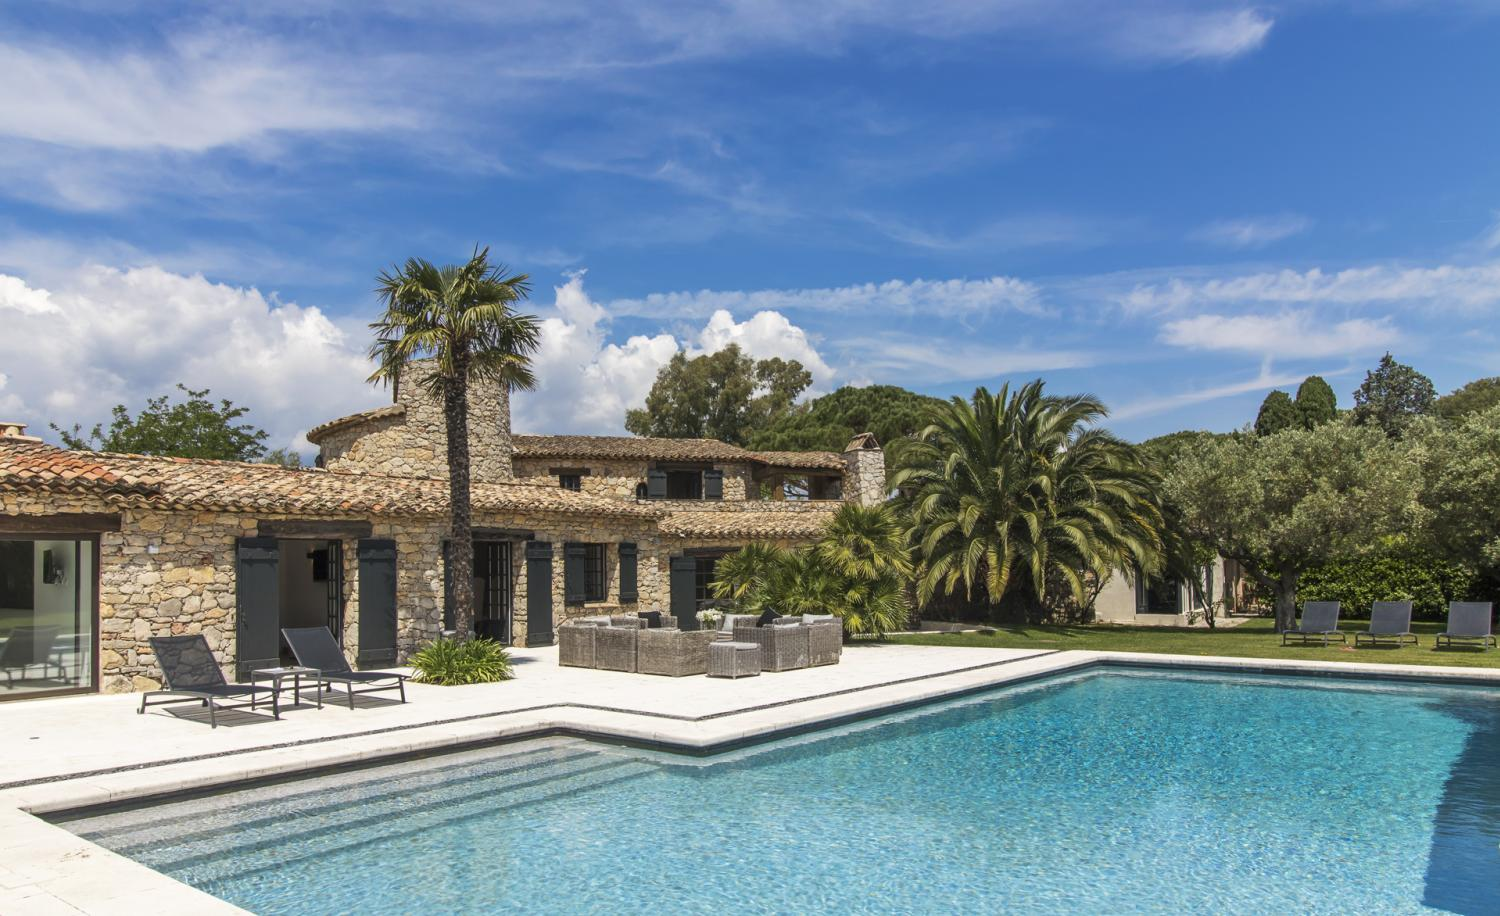 Outdoor pool and villa exterior, Belle de Gassin, St Tropez Var, Gassin.